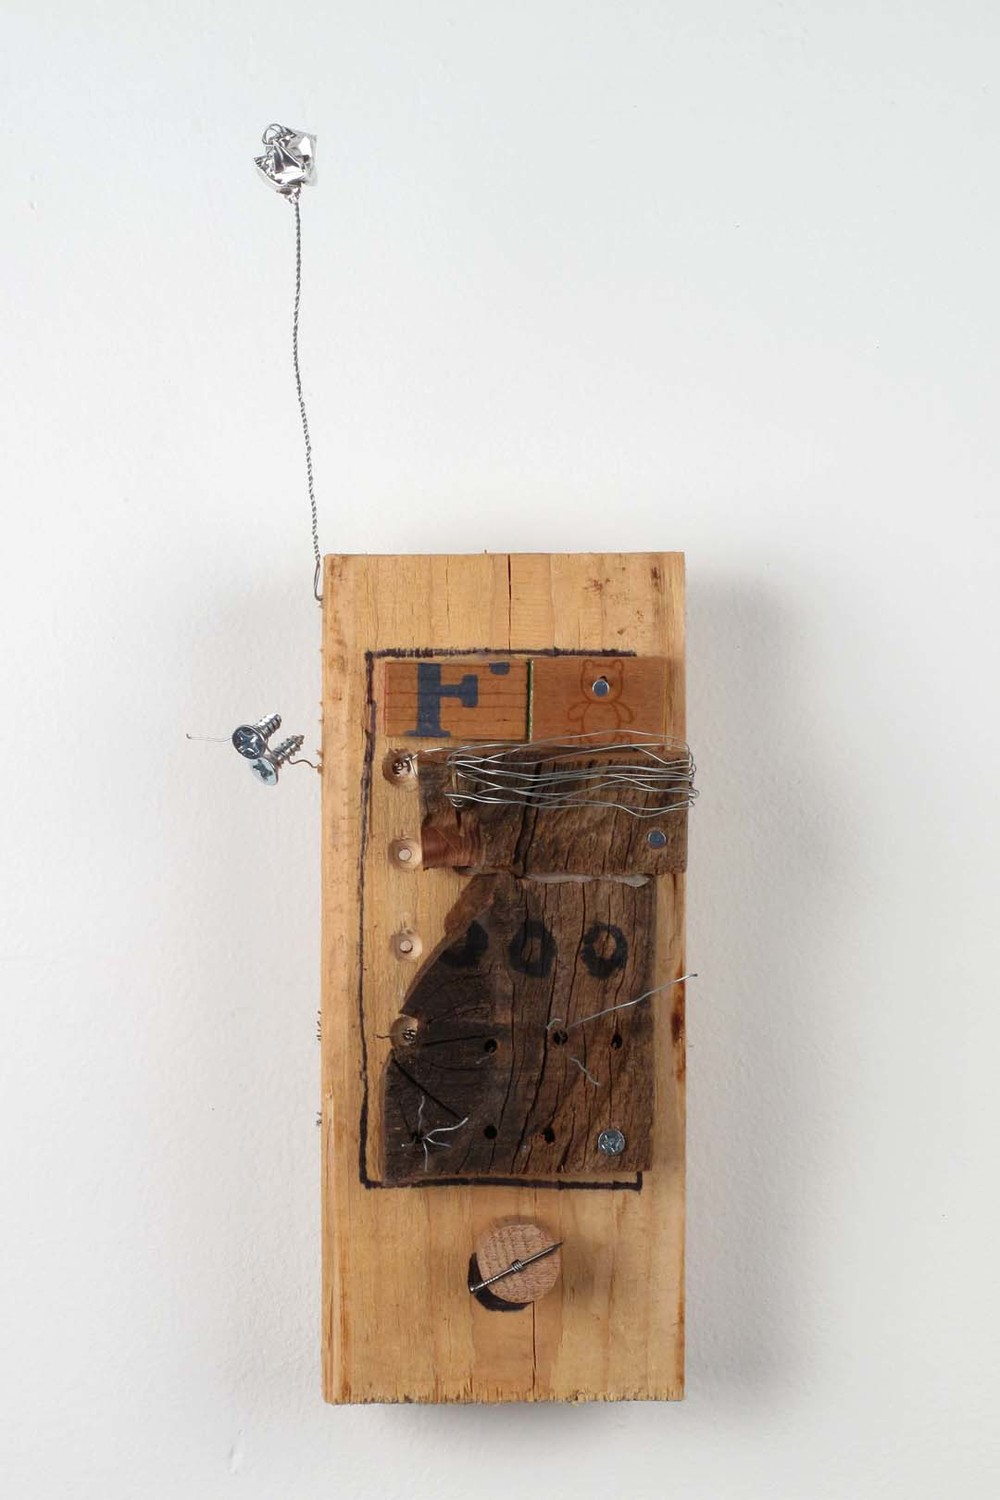 Wooden Phone (Wires)